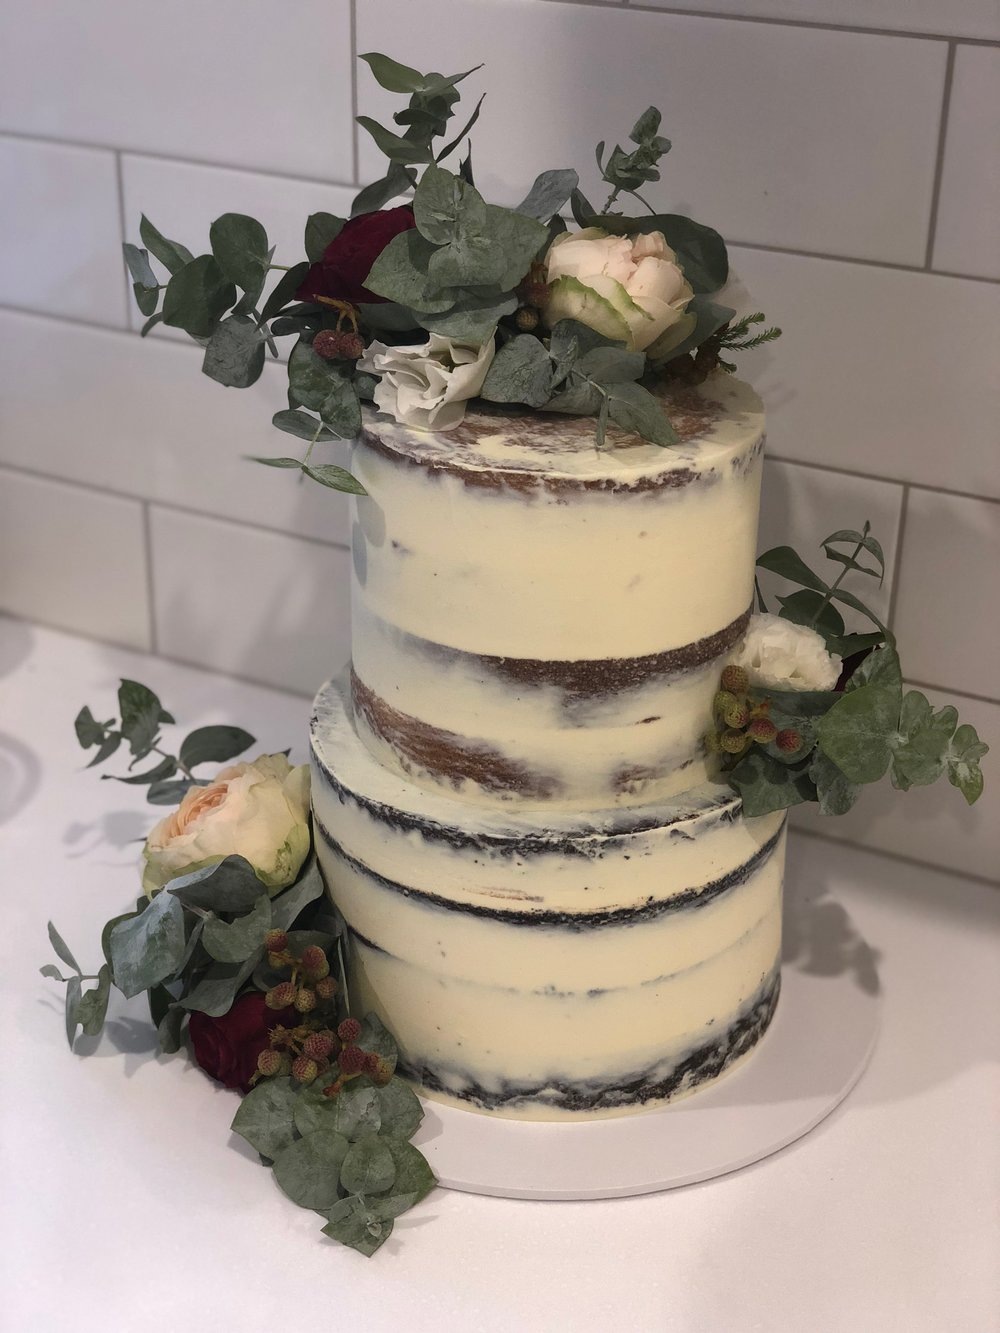 Naked Cake with Flowers and Foliage